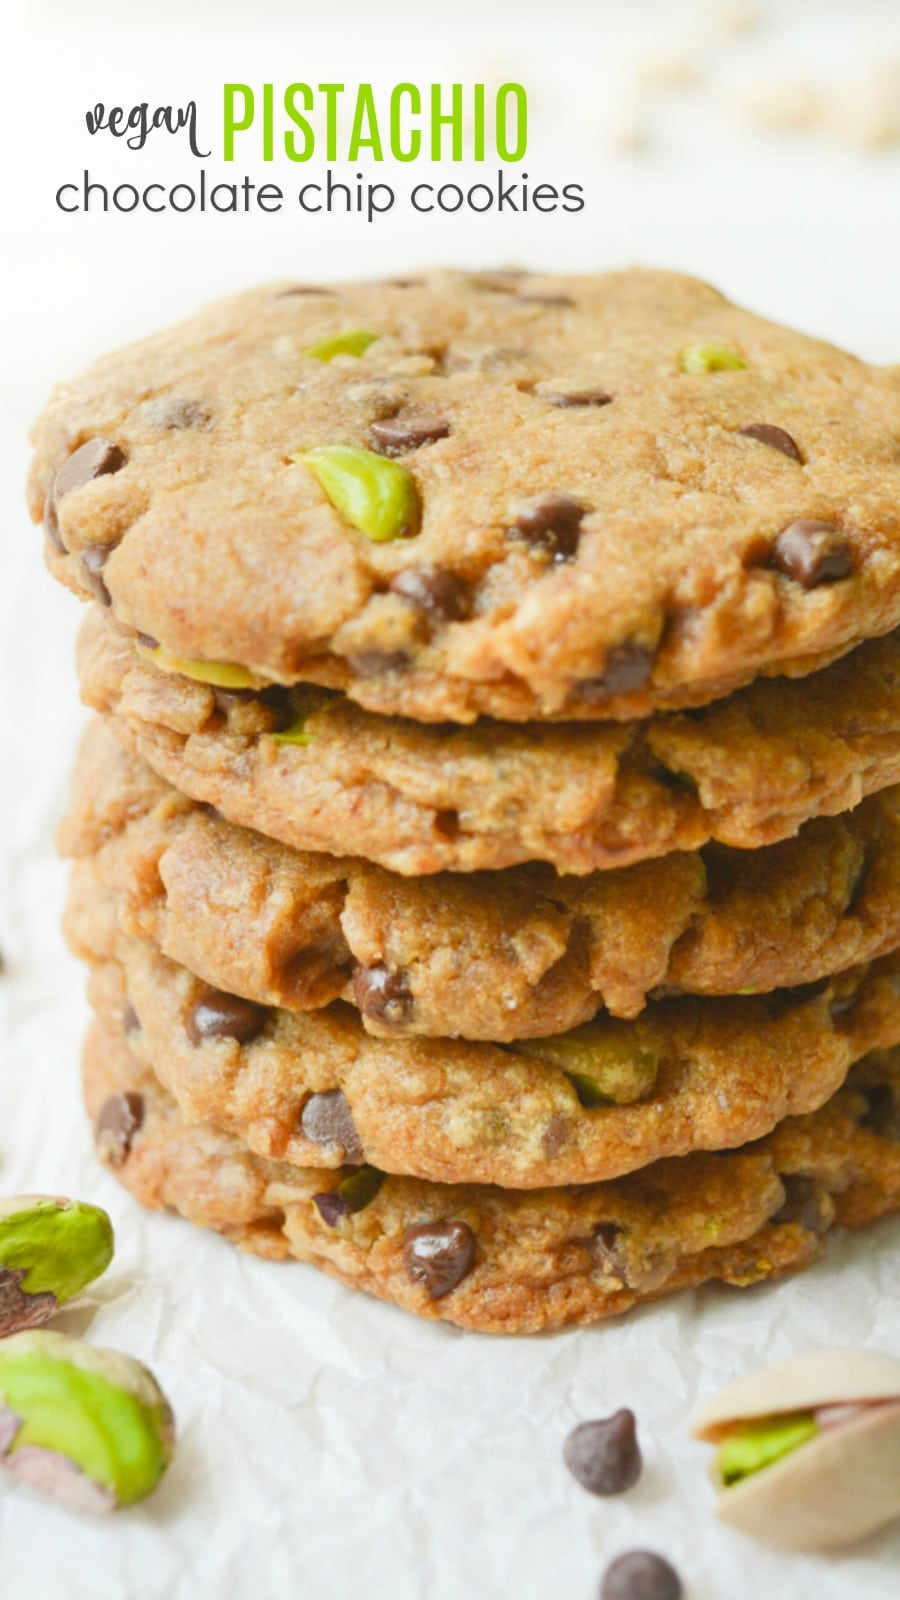 A stack of 5 vegan pistachio cookies.